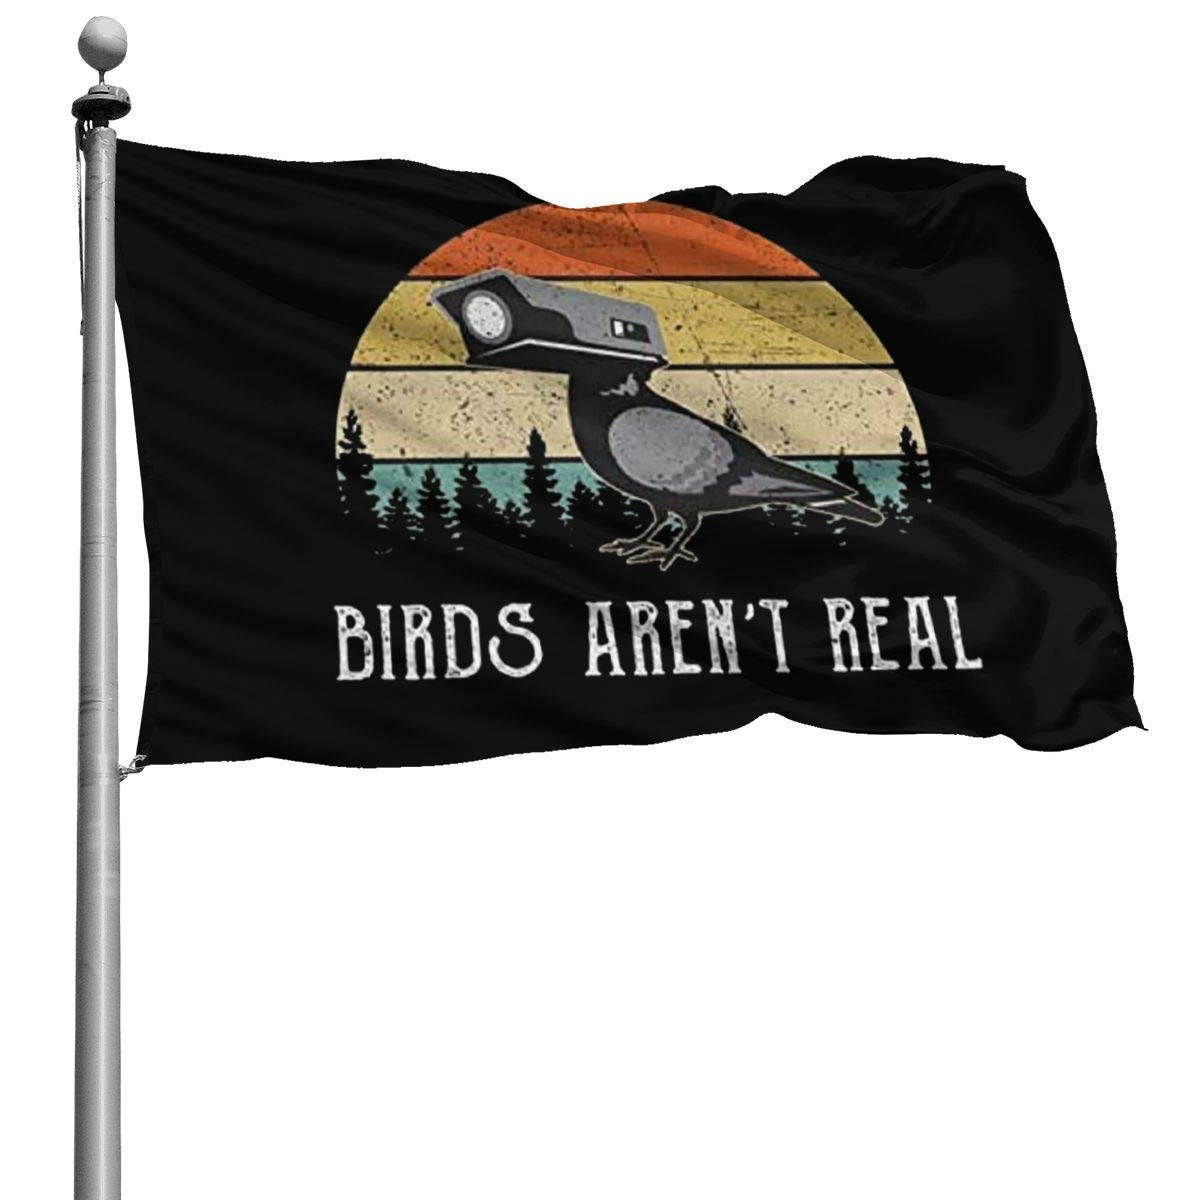 Vipsung Vintage Birds Aren T Real Funny Conspiracy Theory Usa Flag 4x6ft Standard Flag Outdoor Uv Proof Polyester Flag Family Home House Garden Decoration Flags